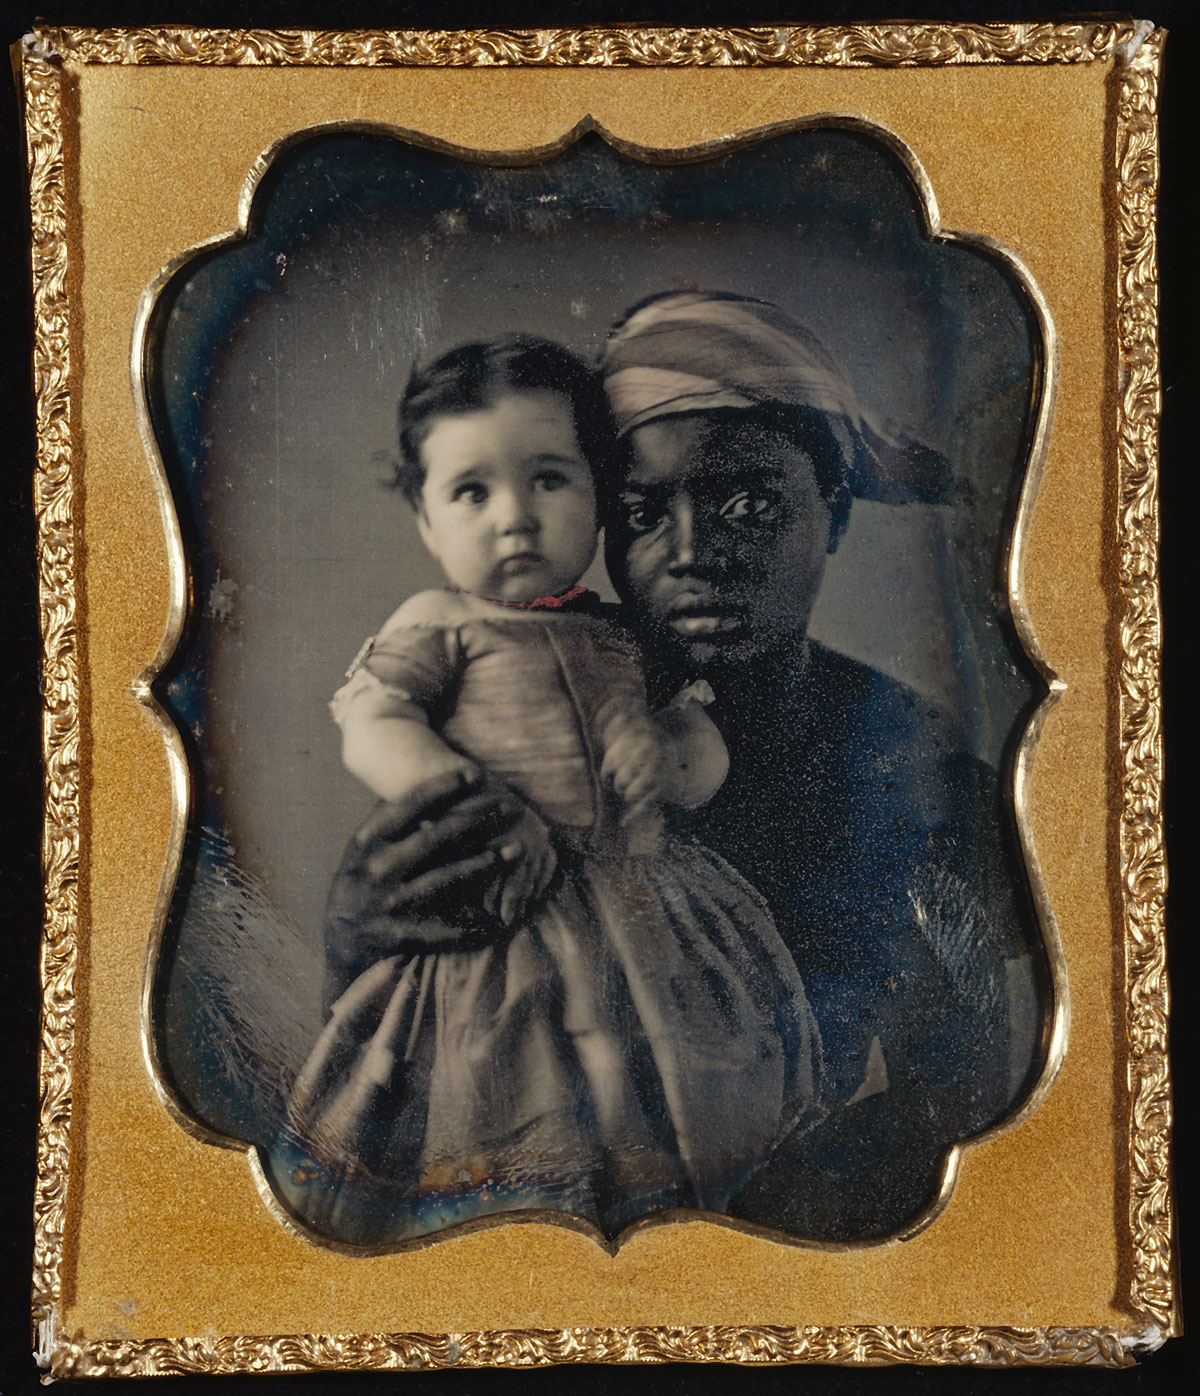 Fotó: Unknown maker (American)<br />Portrait of a Nurse and a Child<br />c. 1850<br />Daguerreotype, hand-colored<br />1/6 plate<br />Image: 6.2 x 4.8 cm (2 7/16 x 1 7/8 in.)<br />Mat: 8.3 x 7.1 cm (3 1/4 x 2 13/16 in.)<br />The J. Paul Getty Museum, Los Angeles